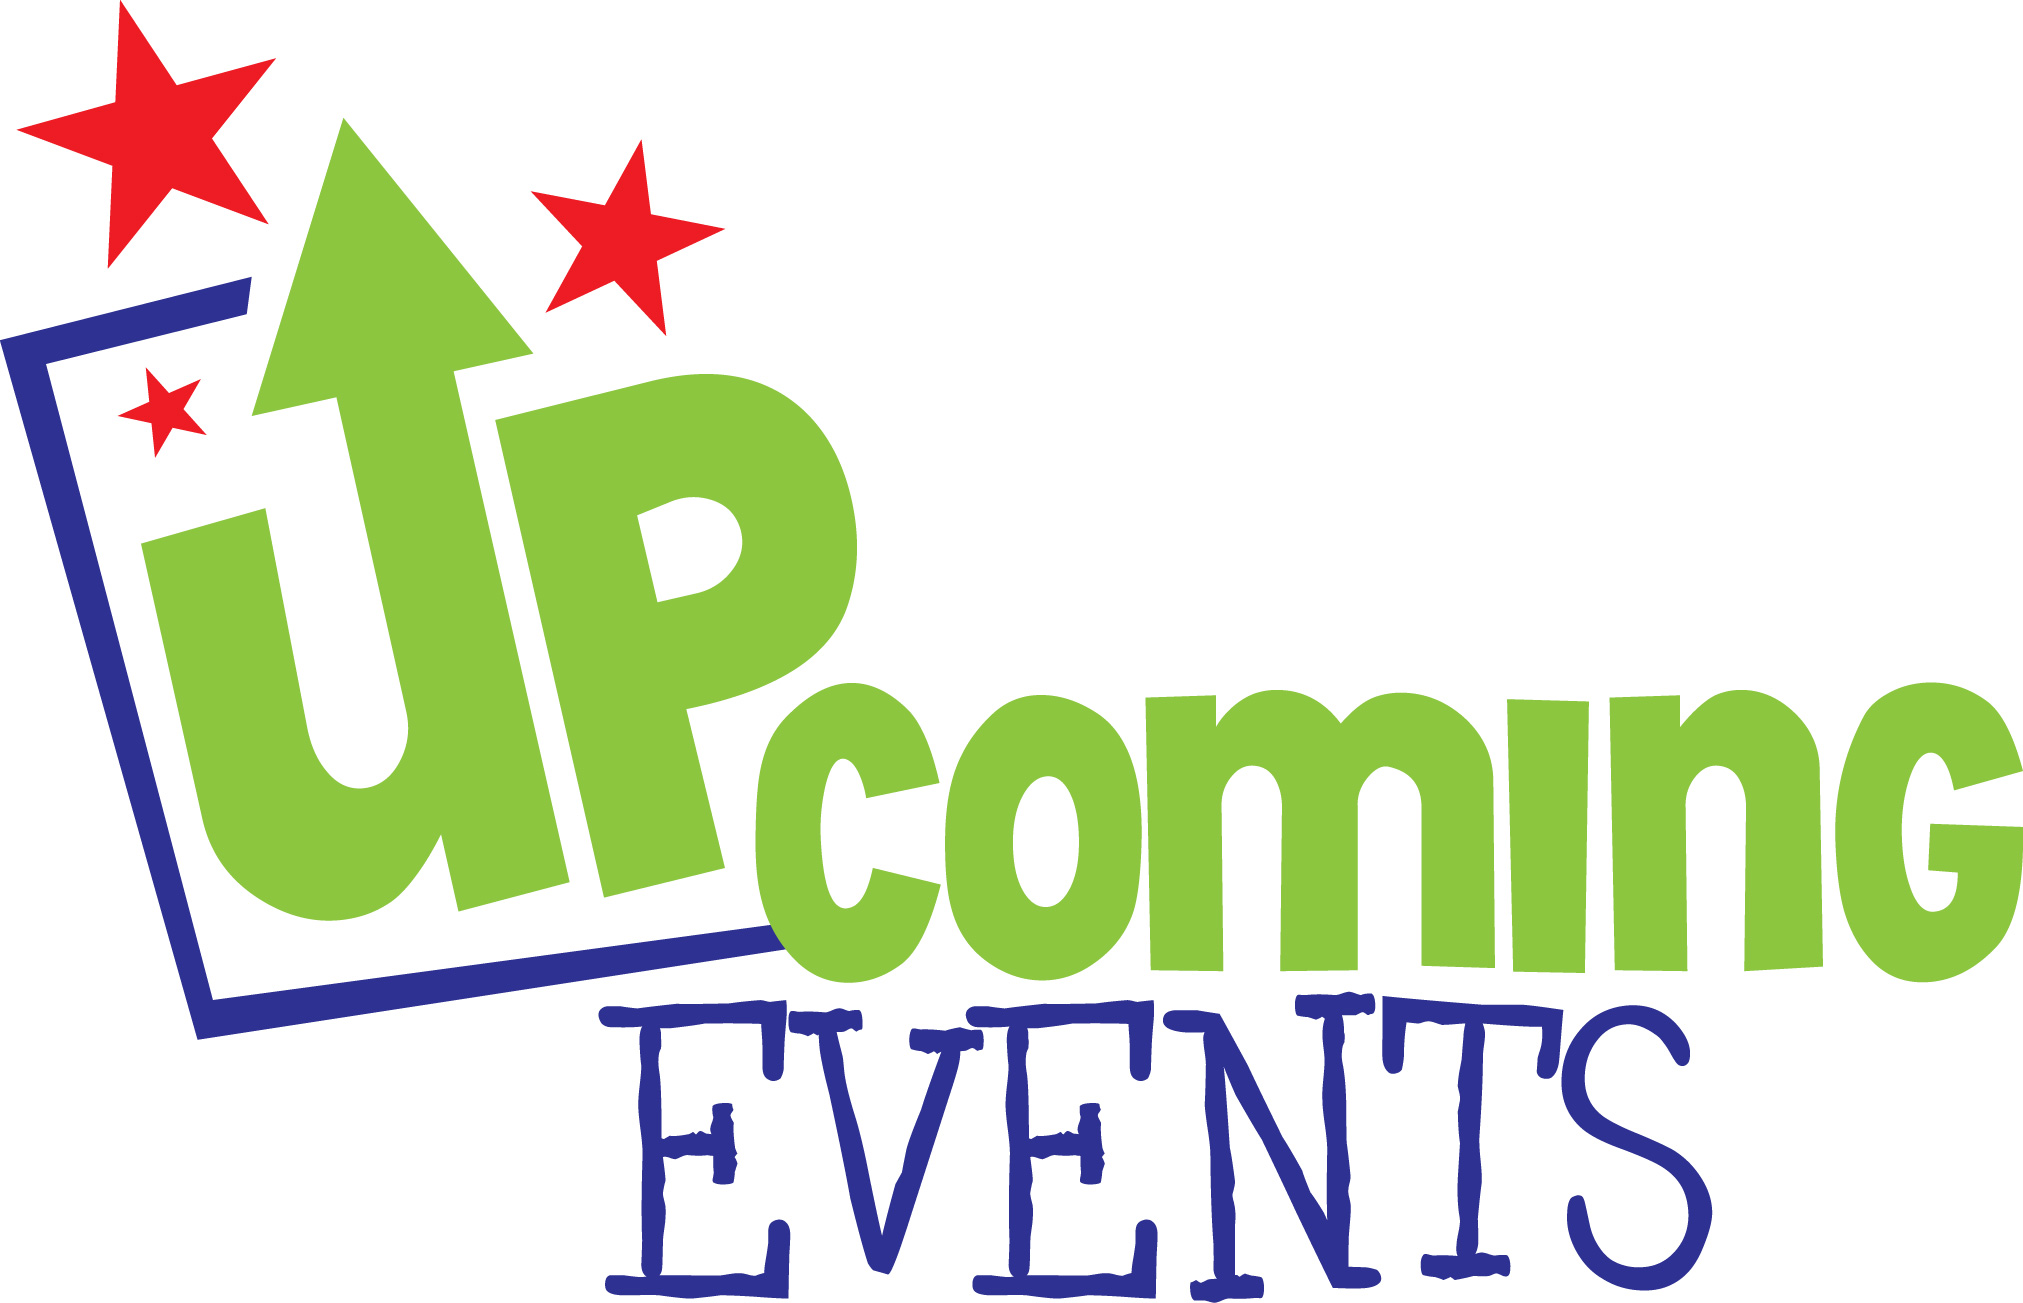 Upcoming events clipart. Free cliparts download clip